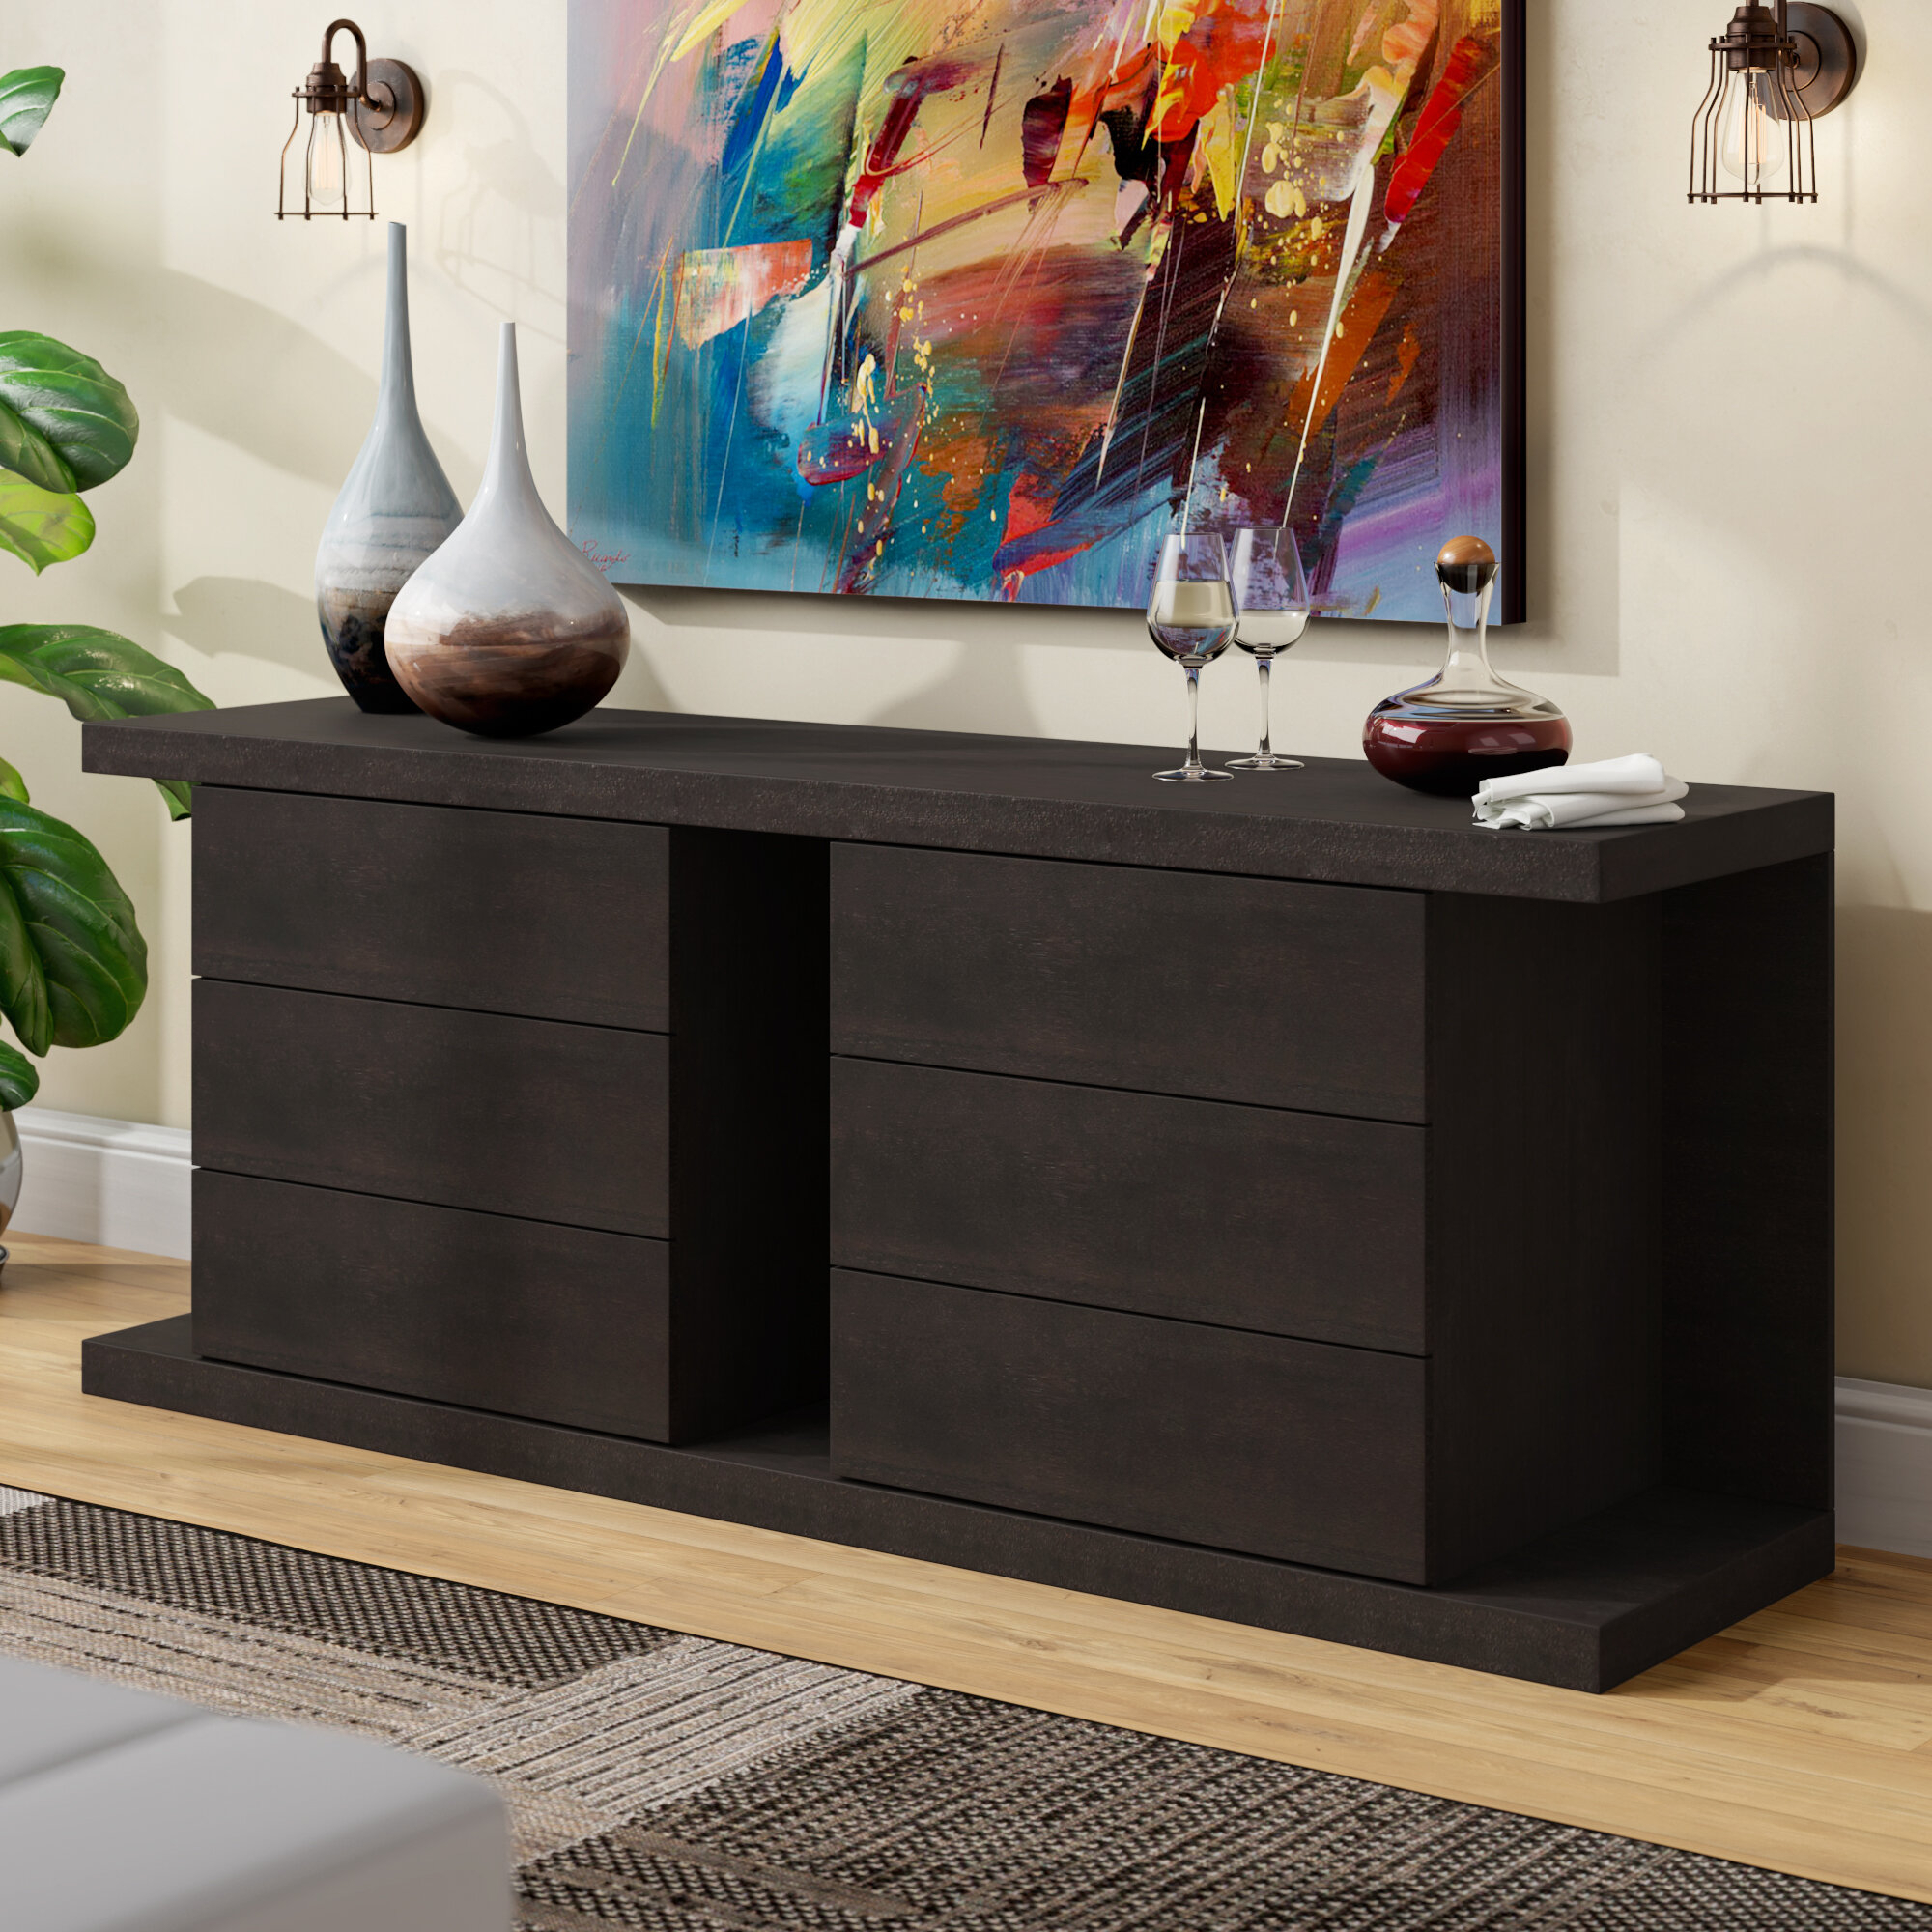 Thite Sideboard With Regard To Best And Newest Thite Sideboards (View 20 of 20)